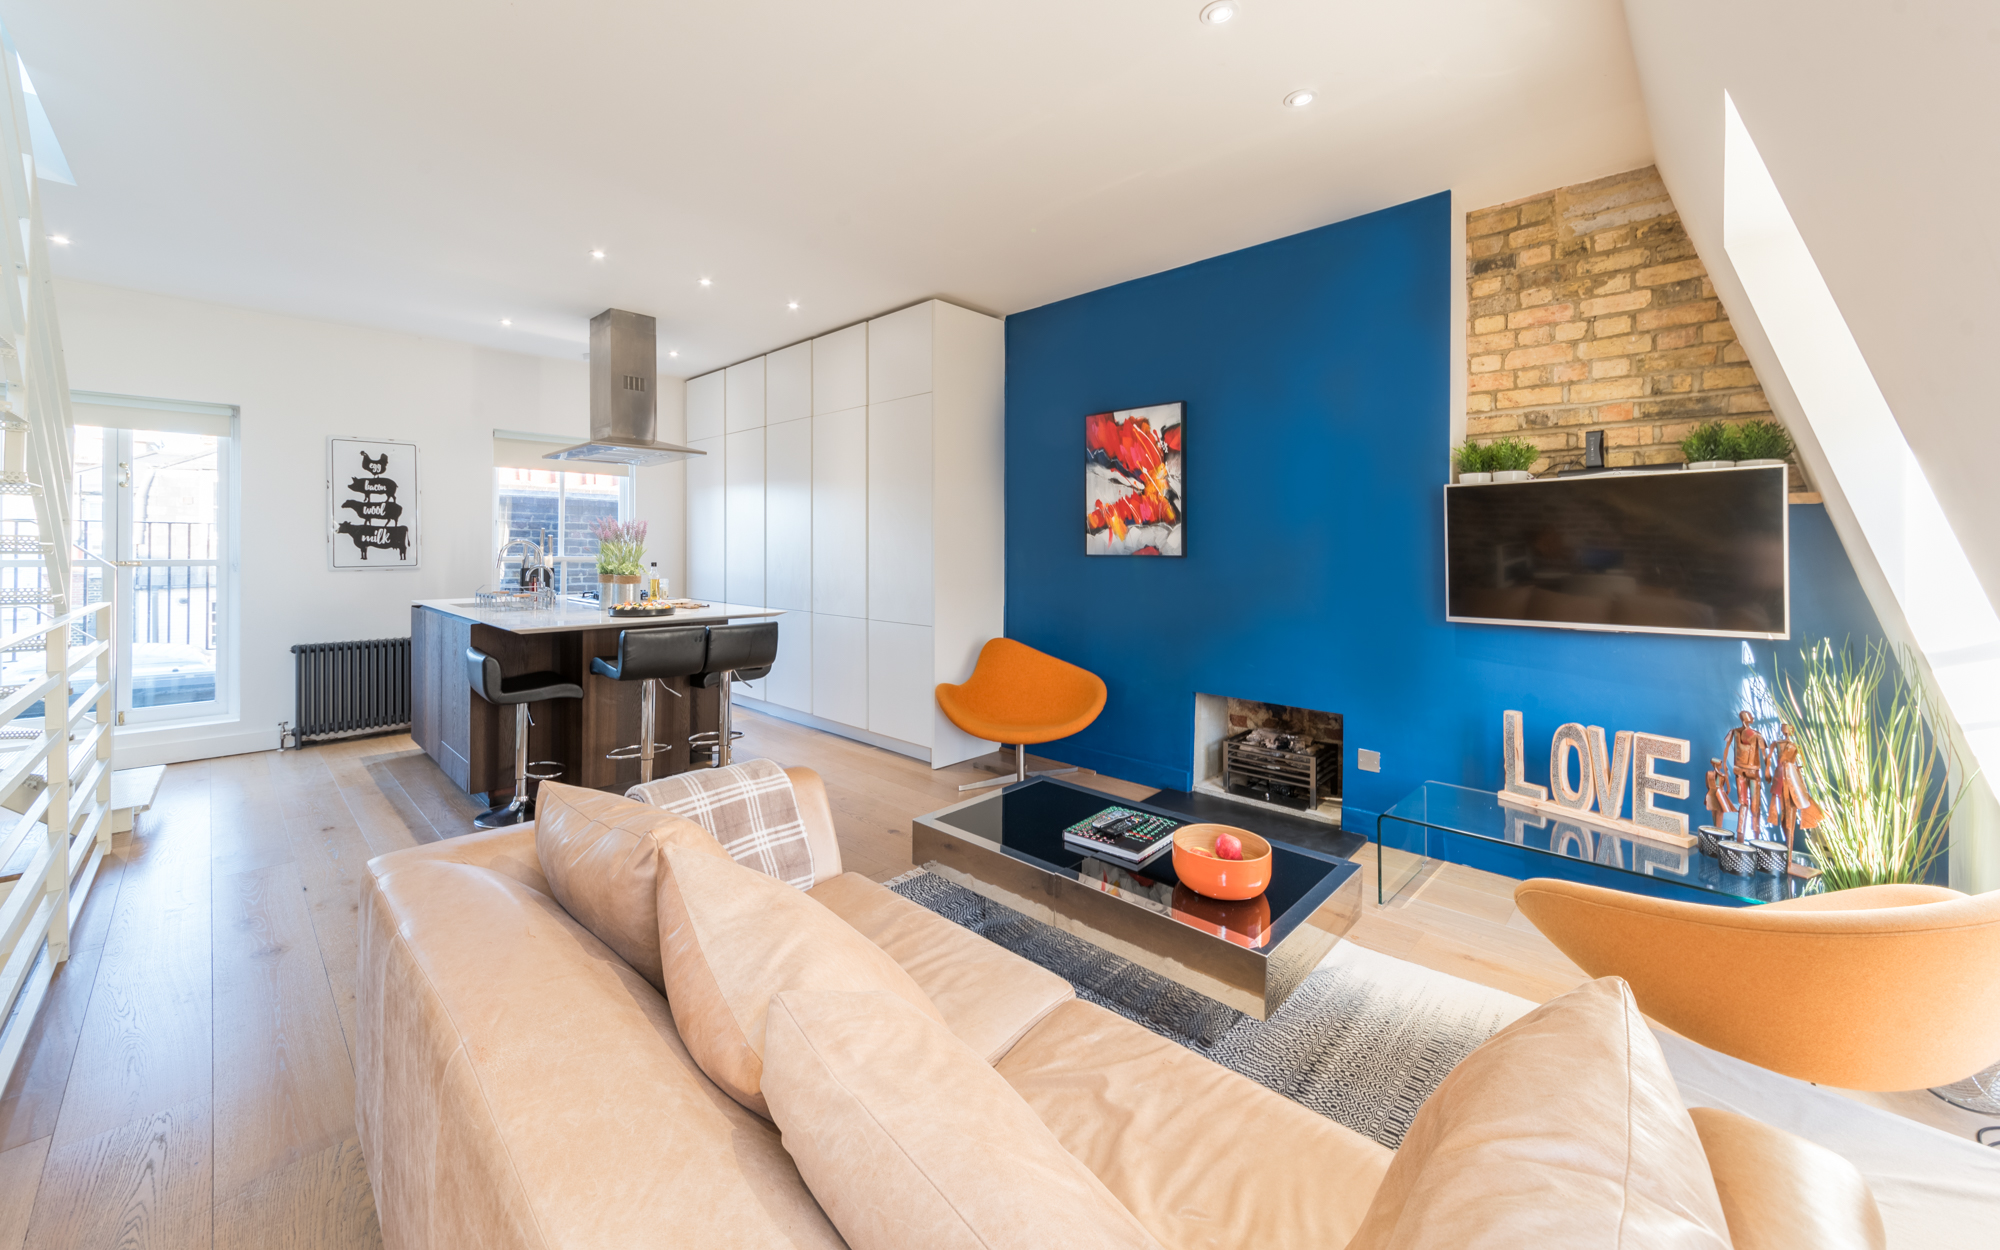 Lovelydays luxury service apartment rental - London - Fitzrovia - Foley Street II - Lovelysuite - 2 bedrooms - 2 bathrooms - Luxury living room - 8a45ab7722e8 - Lovelydays